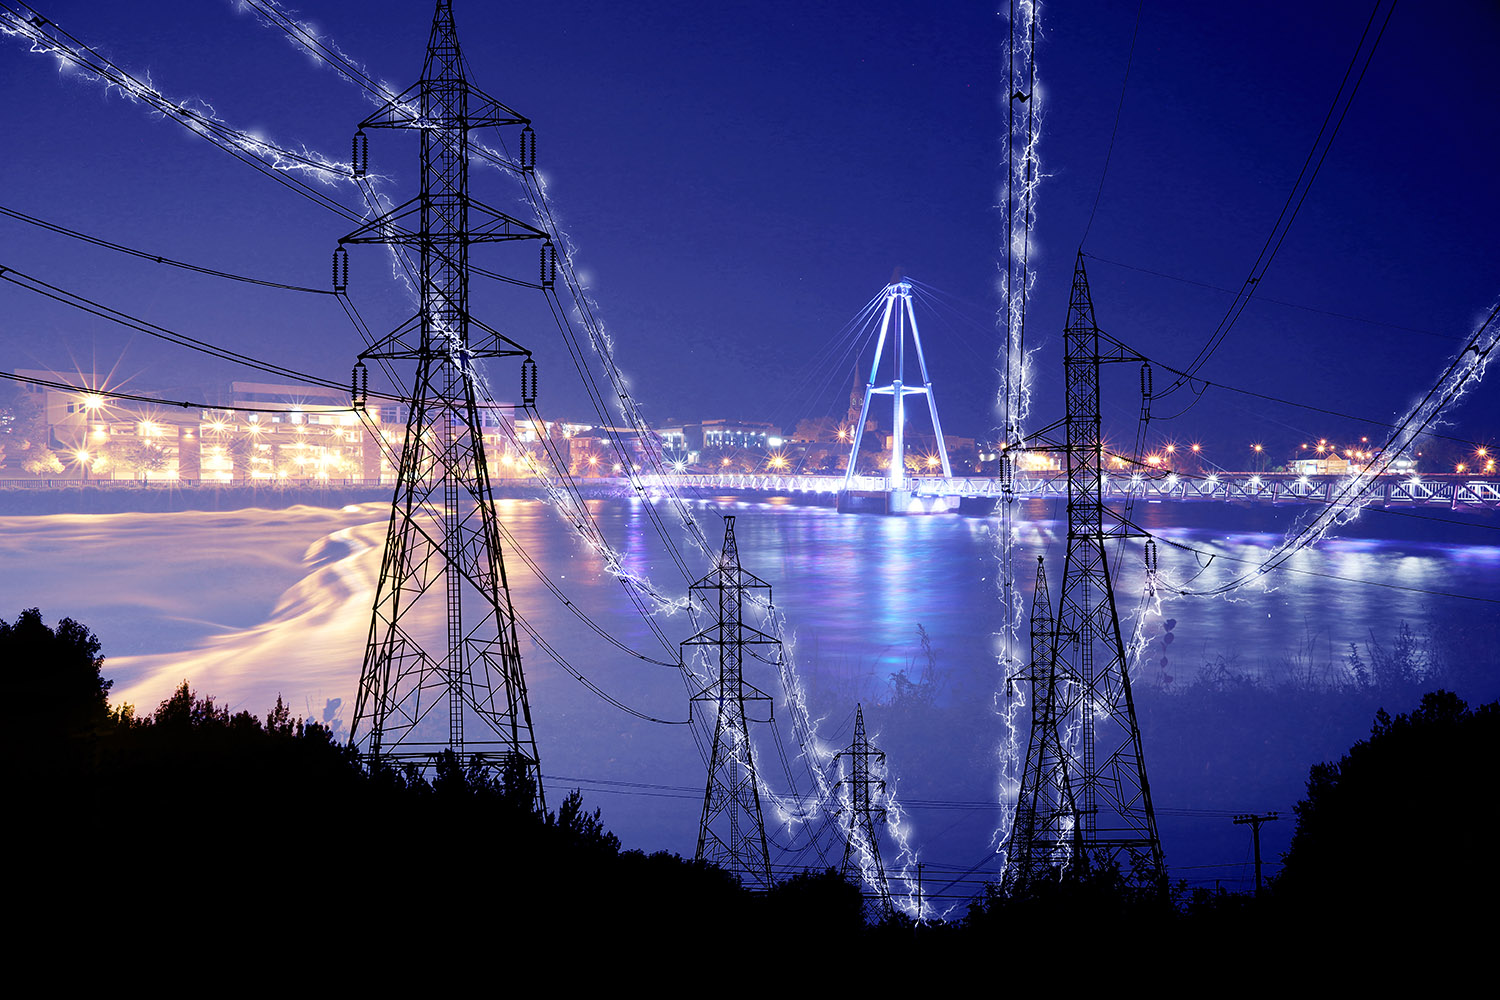 Small Town Electrification at Night in Blue - Stock Photography